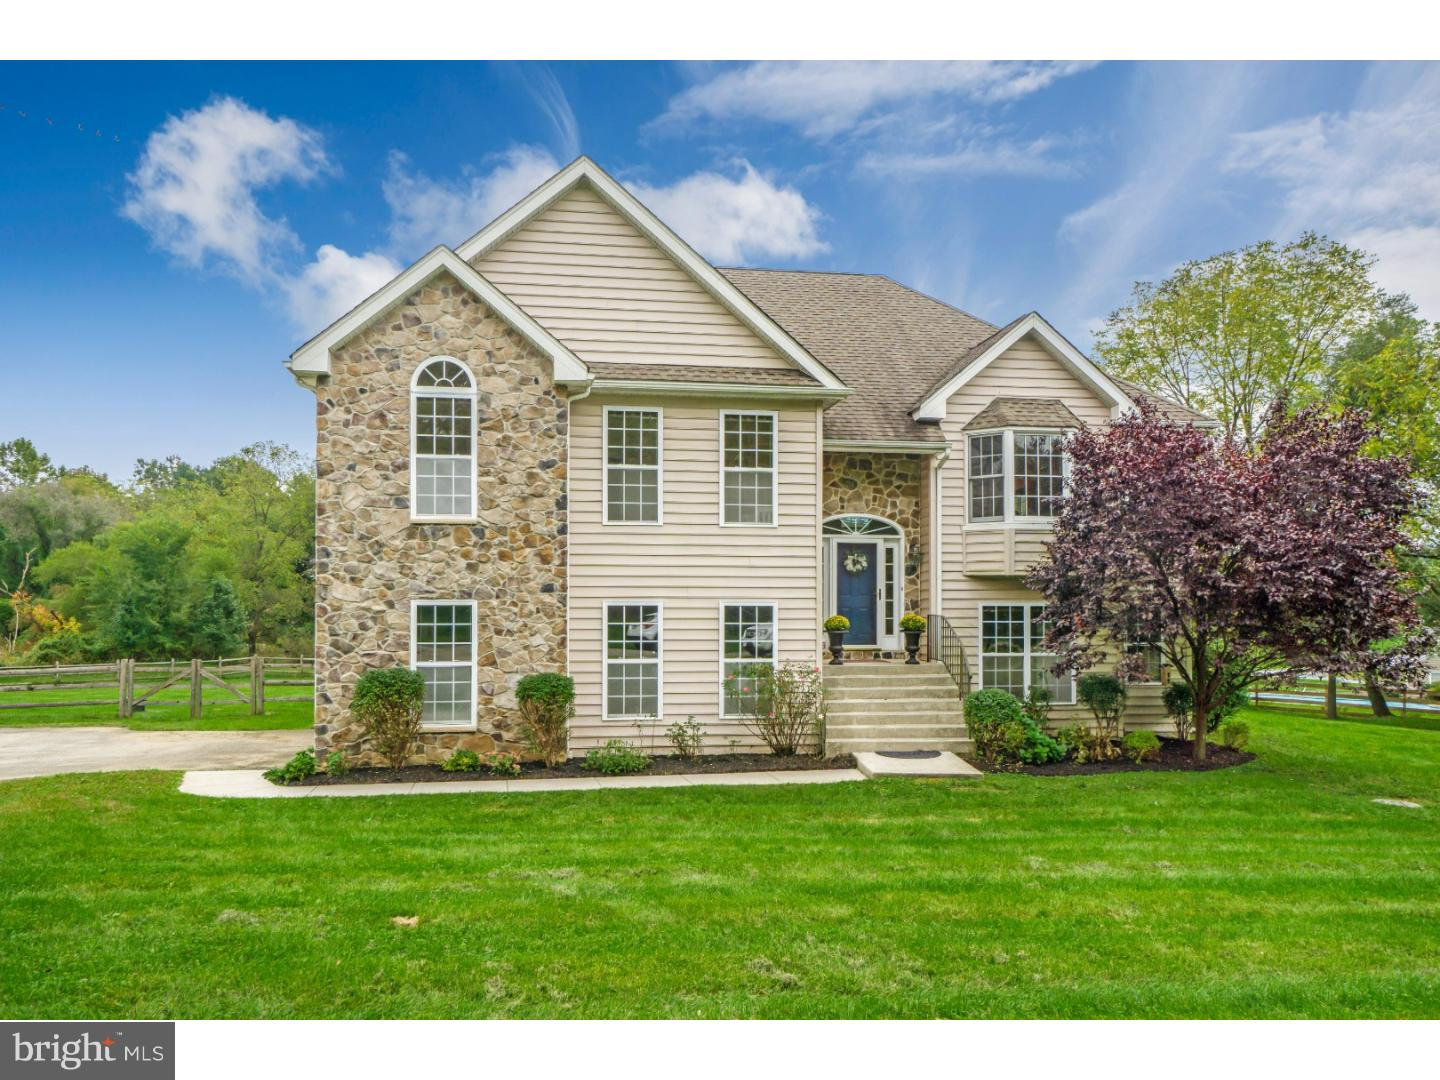 975 N New Street West Chester , PA 19380